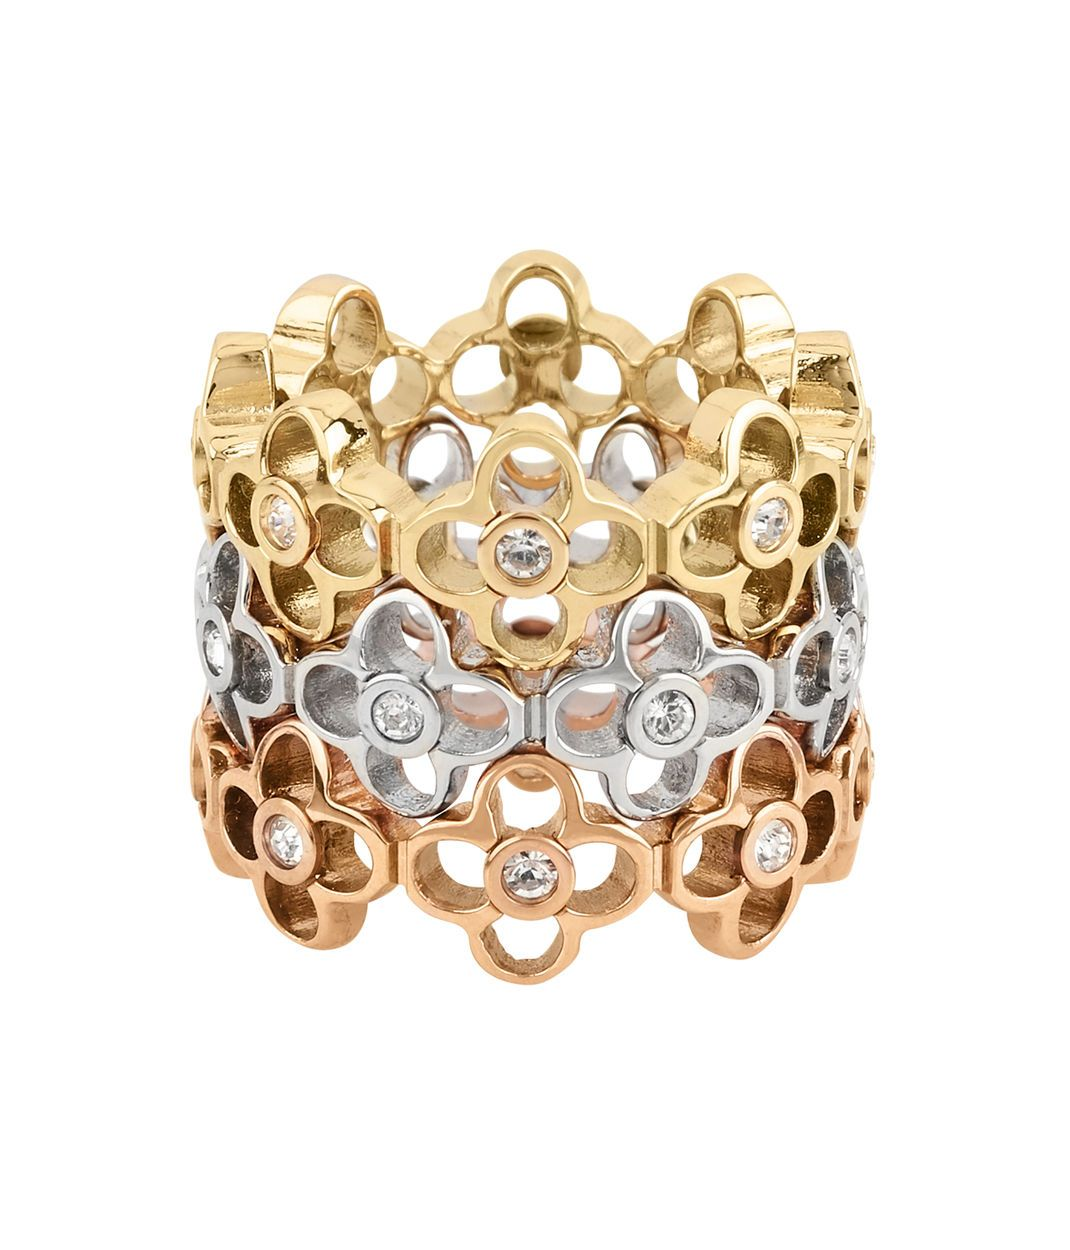 6e303a0e3f0 Proclaim your Bendel Girl beauty with the Iconic Charm Stack Ring. Crafted  with contrasting gold